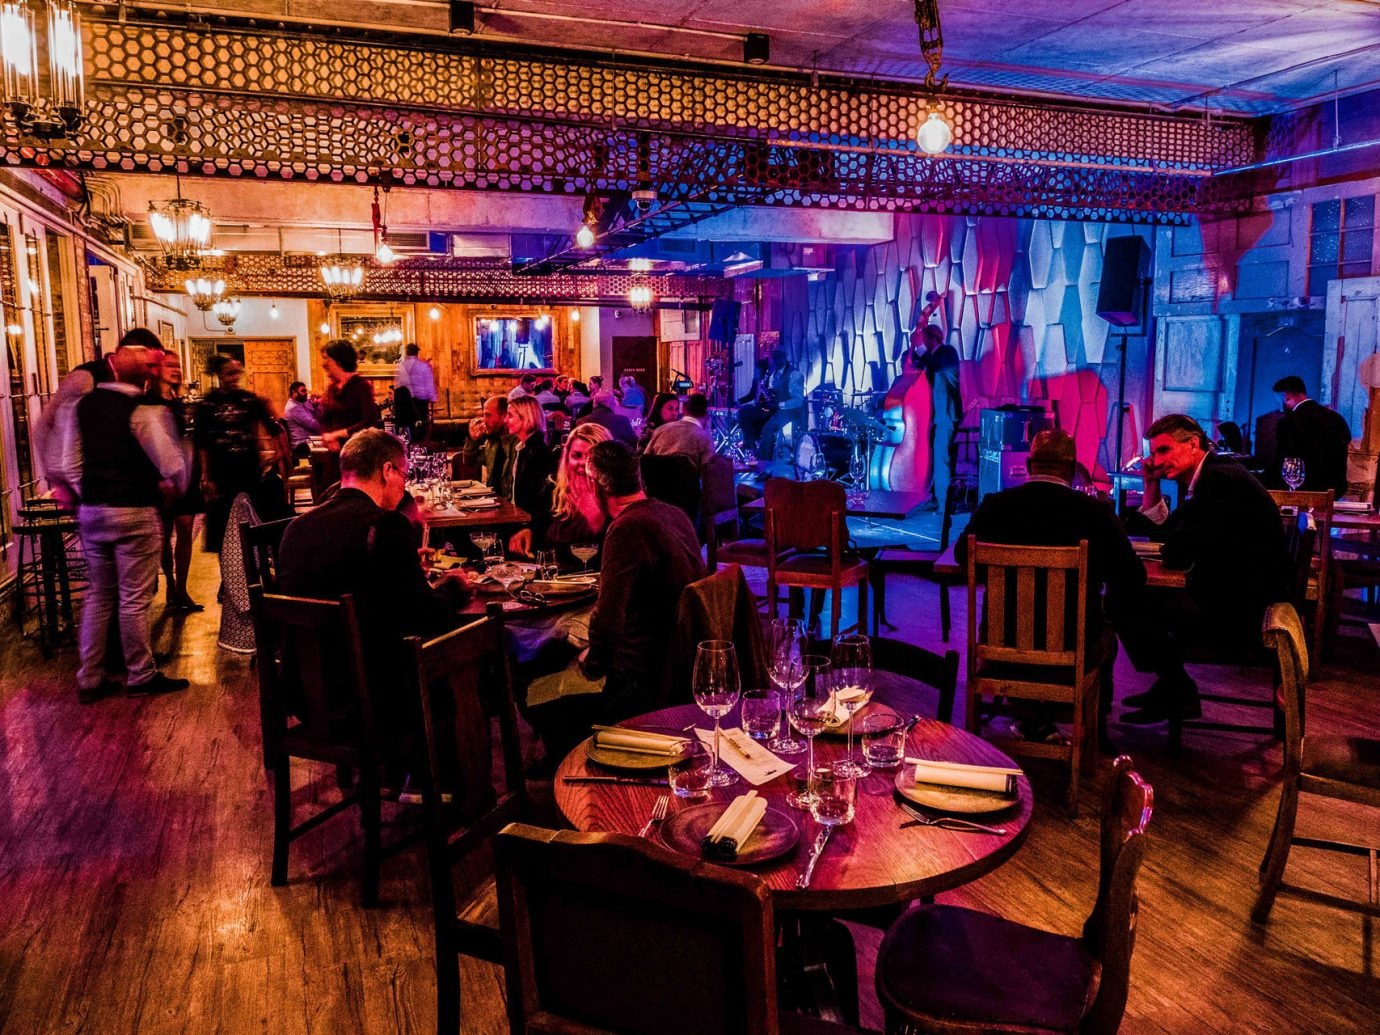 Arts + Culture Trip Ideas floor indoor function hall person purple restaurant people ceremony scene ceiling lighting wedding reception event ballroom Party group Bar banquet interior design several crowd